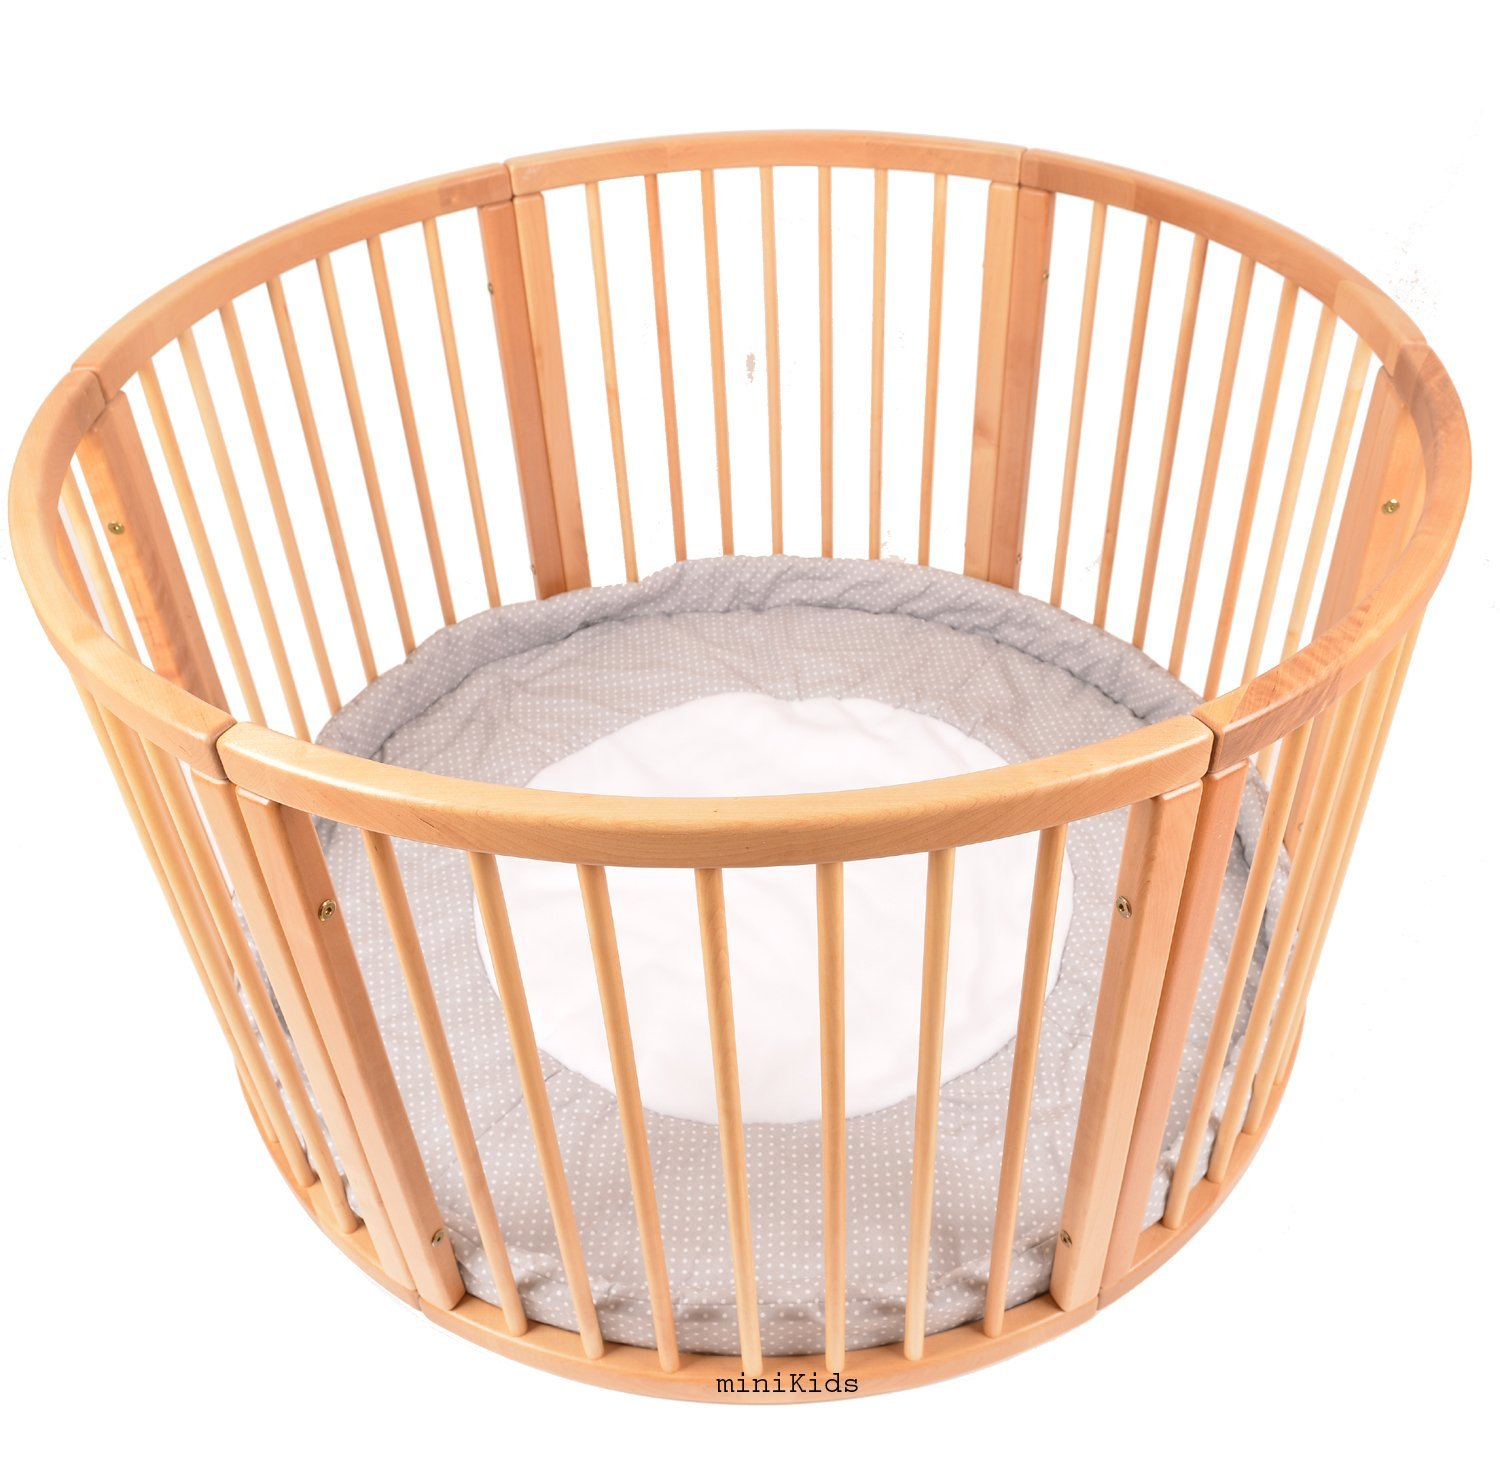 VERY LARGE WOODEN BABY PLAYPEN (Ø 120cm) WITH PLAYMAT (Stripes) miniKids PP15021601